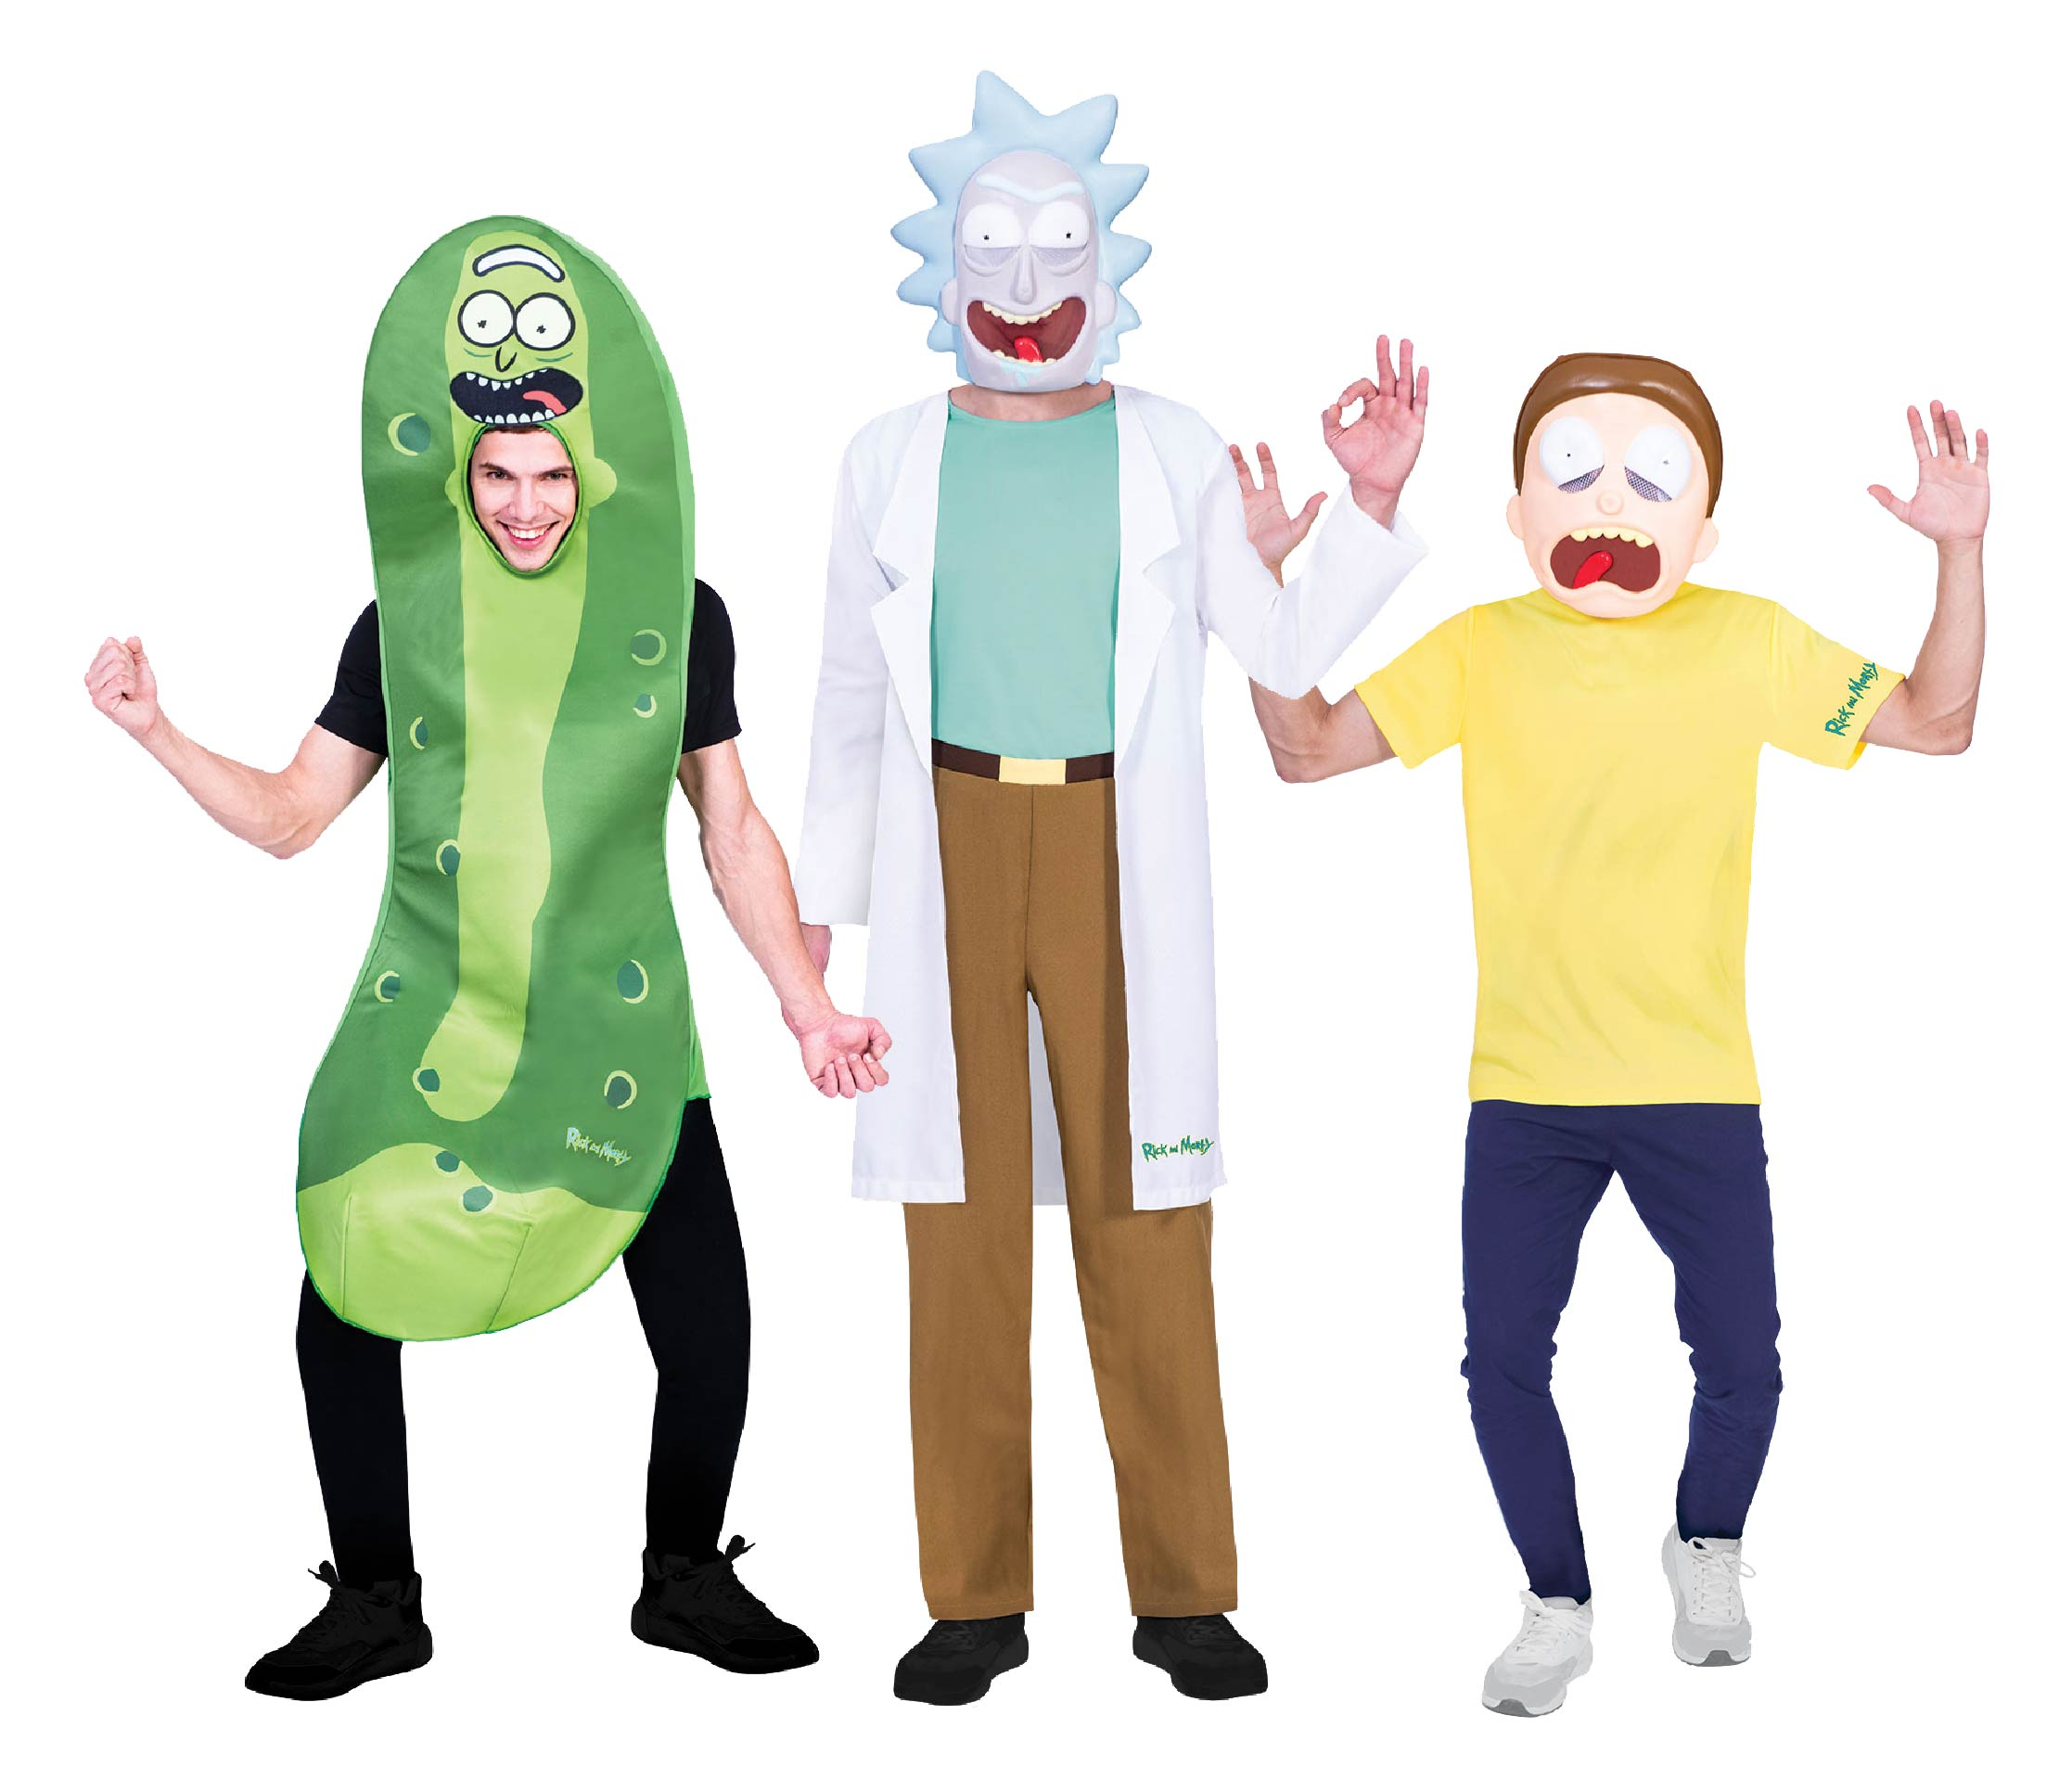 People wearing Rick & Morty group costume with Pickle Rick.